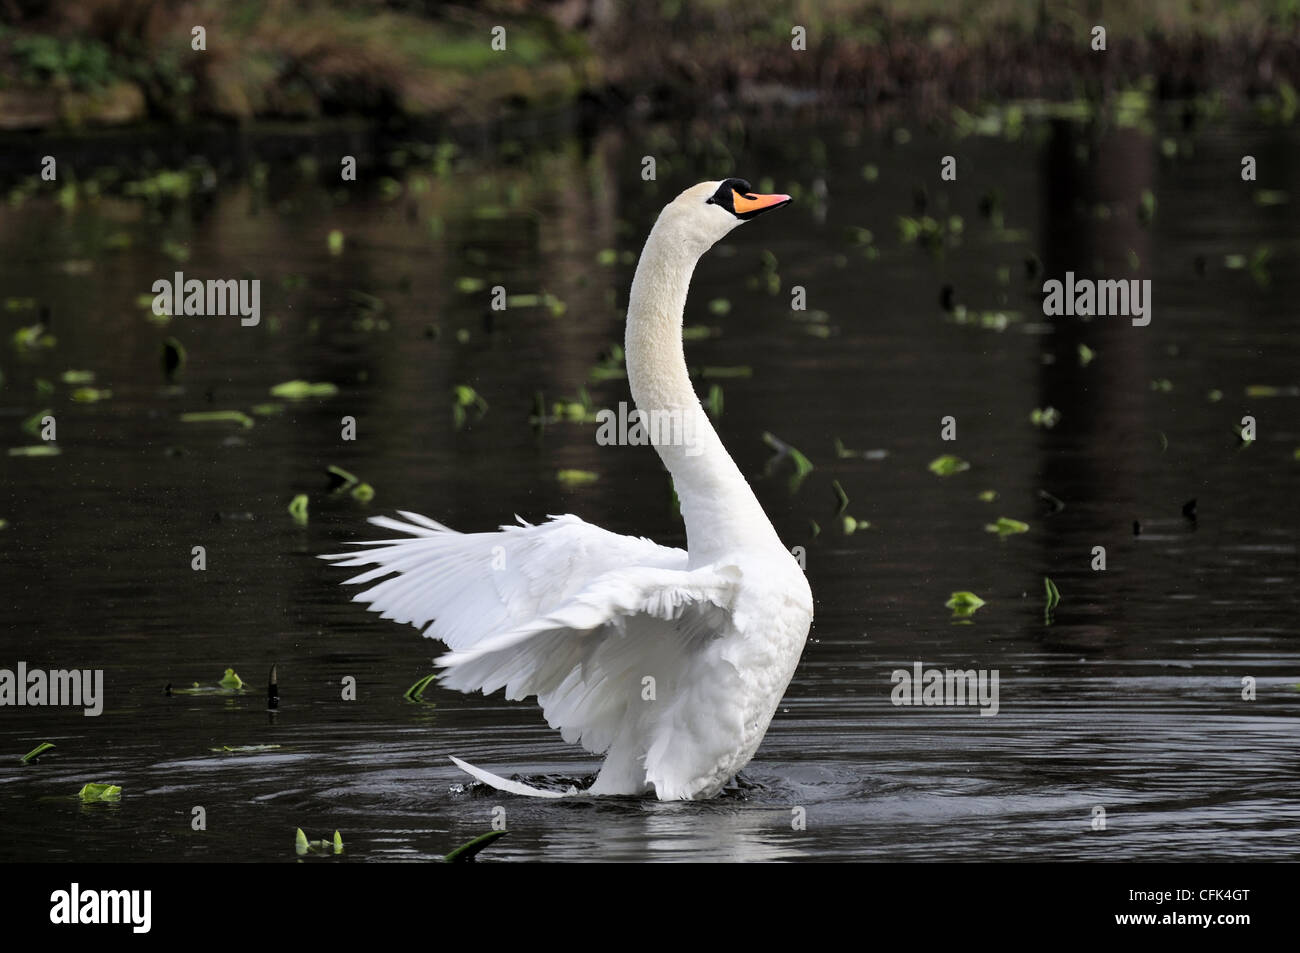 Mute swan with wings swept back at Dunham Massey - Stock Image